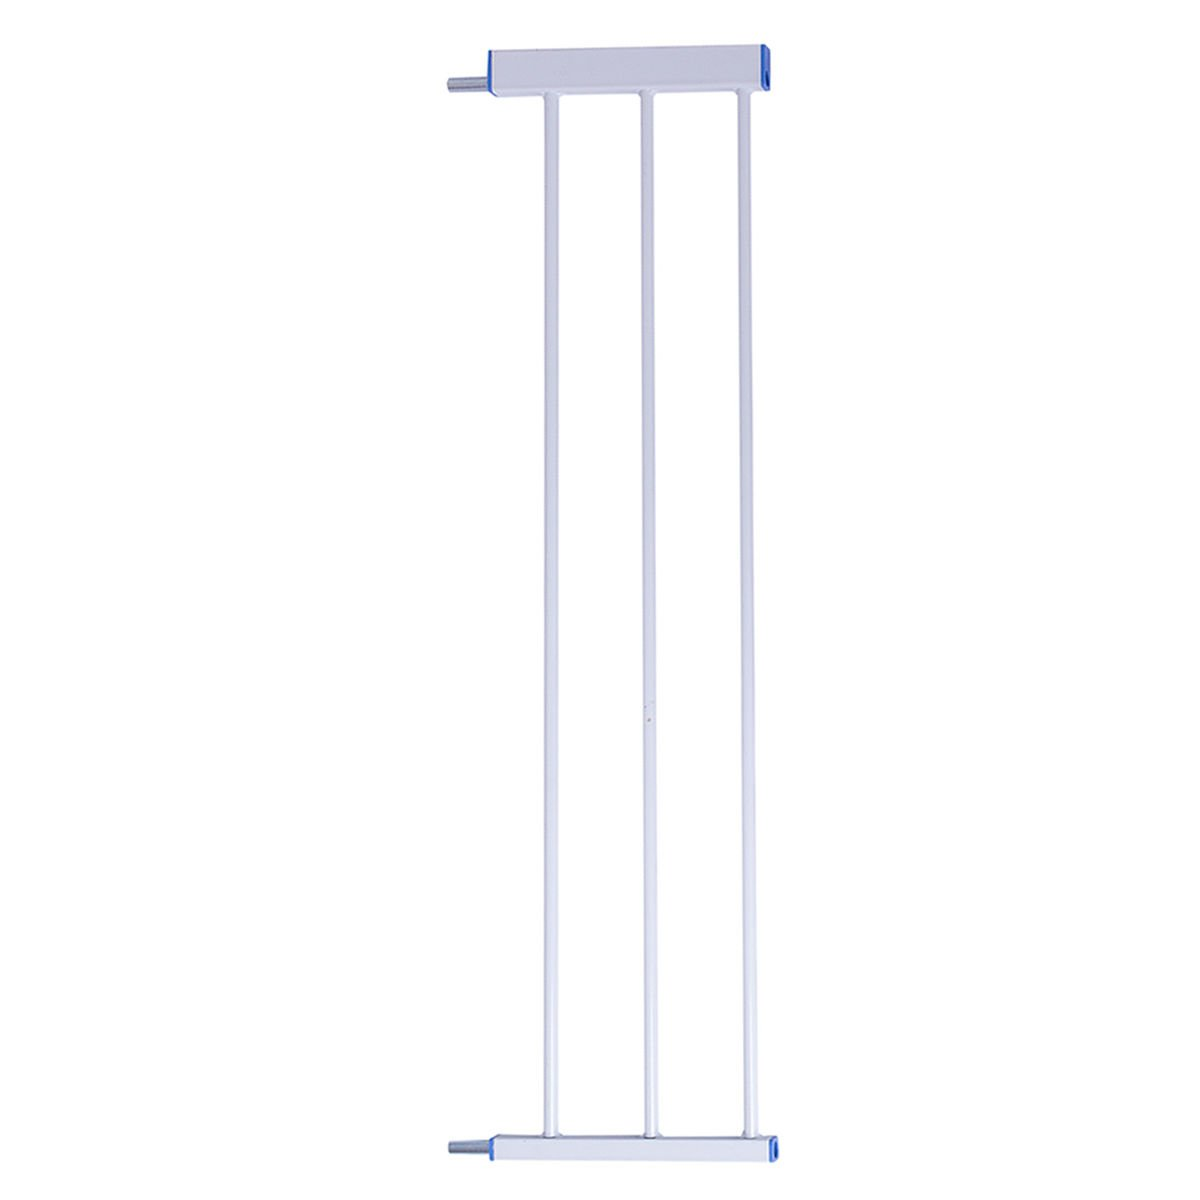 Costzon 7.9-Inch Gate Extension for Baby Safety Gate, Pet Gate (Blue)